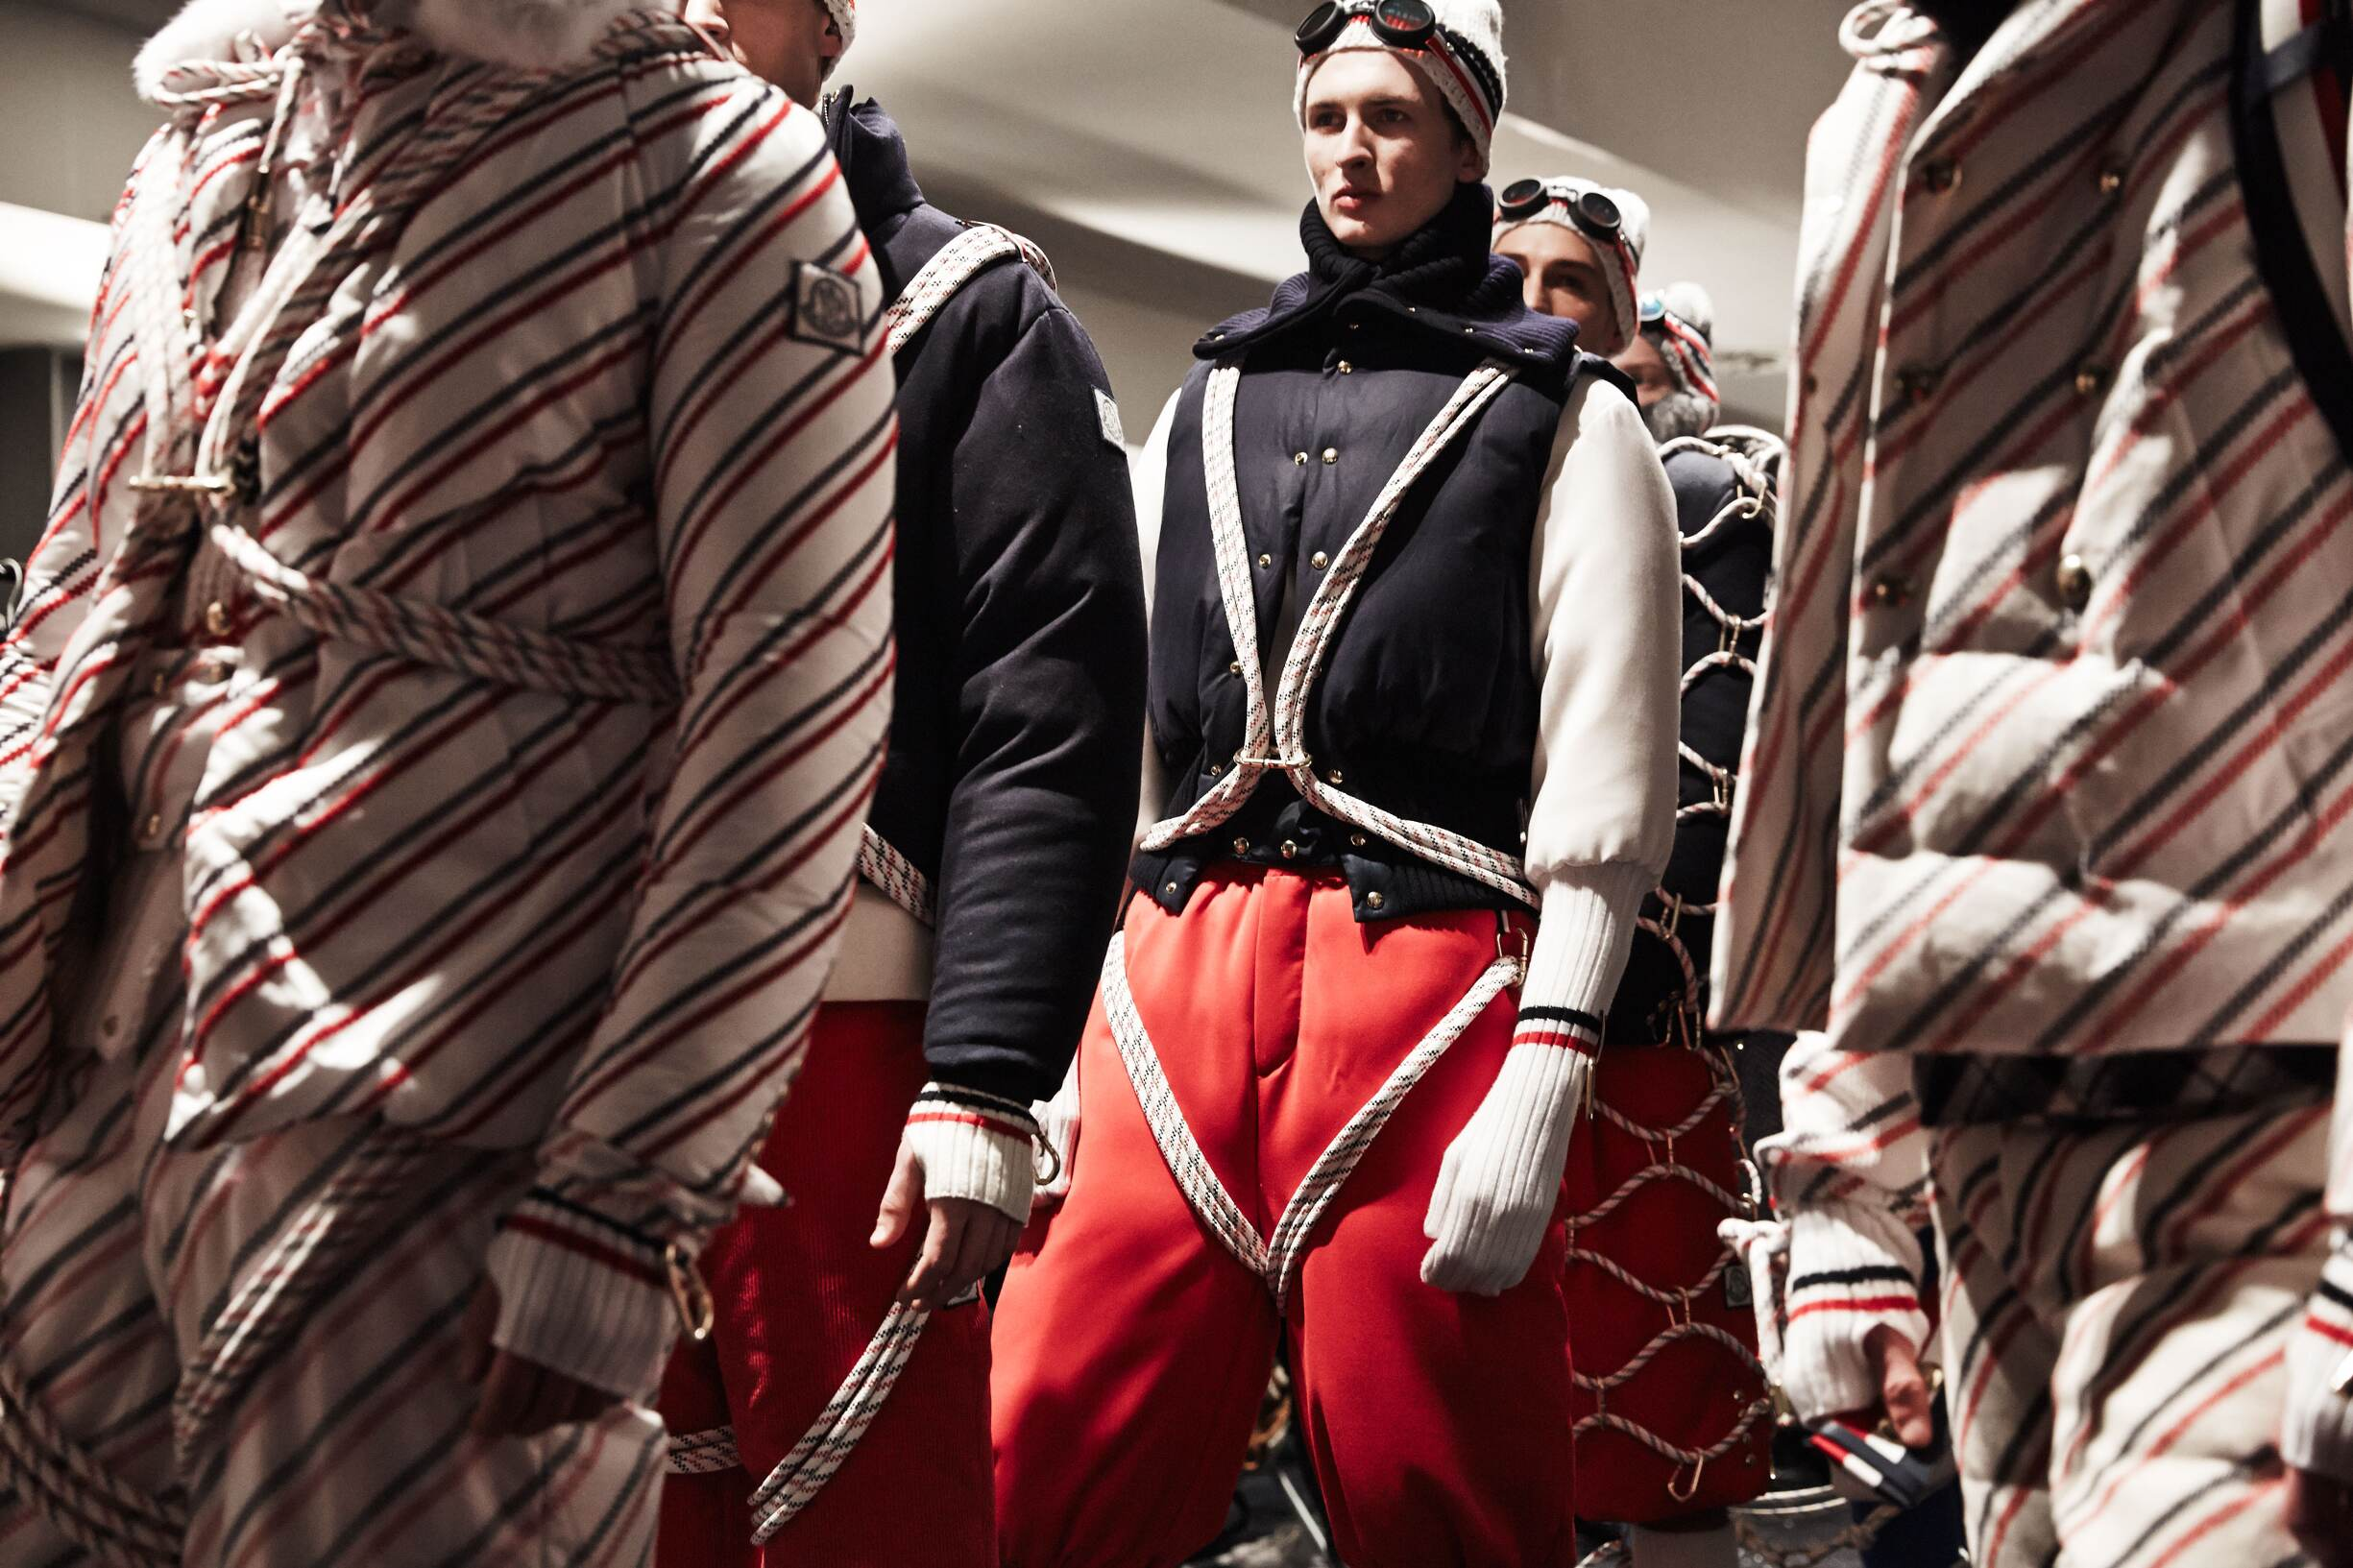 Backstage Moncler Gamme Bleu Fashion Show Models